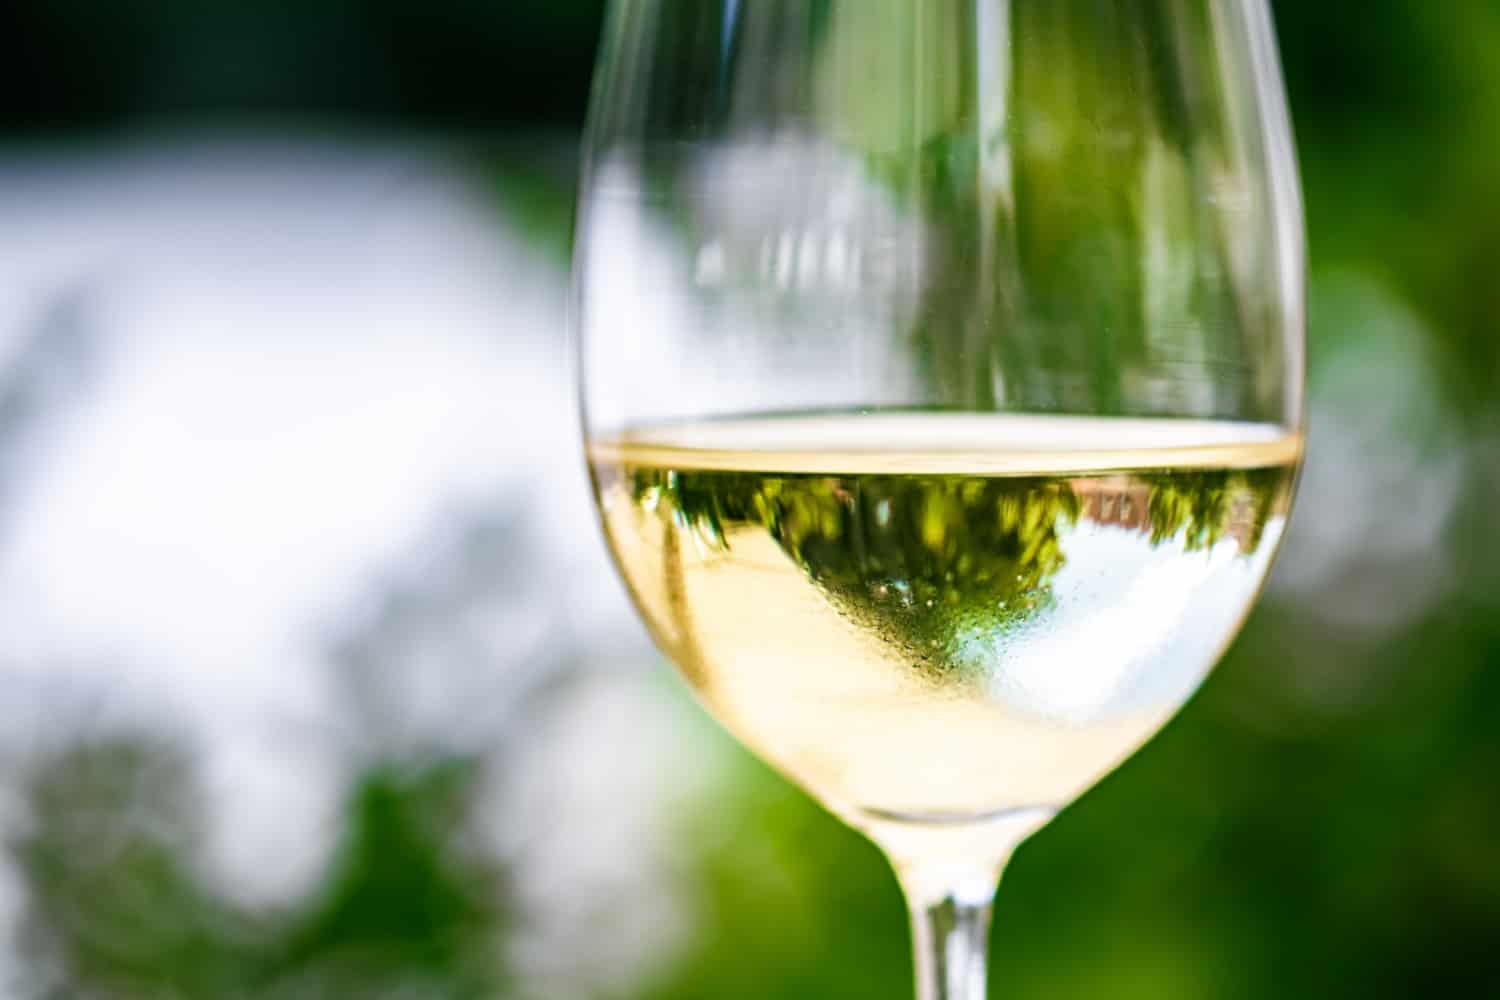 white-wine-in-luxury-restaurant-on-summer-garden-terrace-wine-tasting-experience-at-winery-in-the-vi